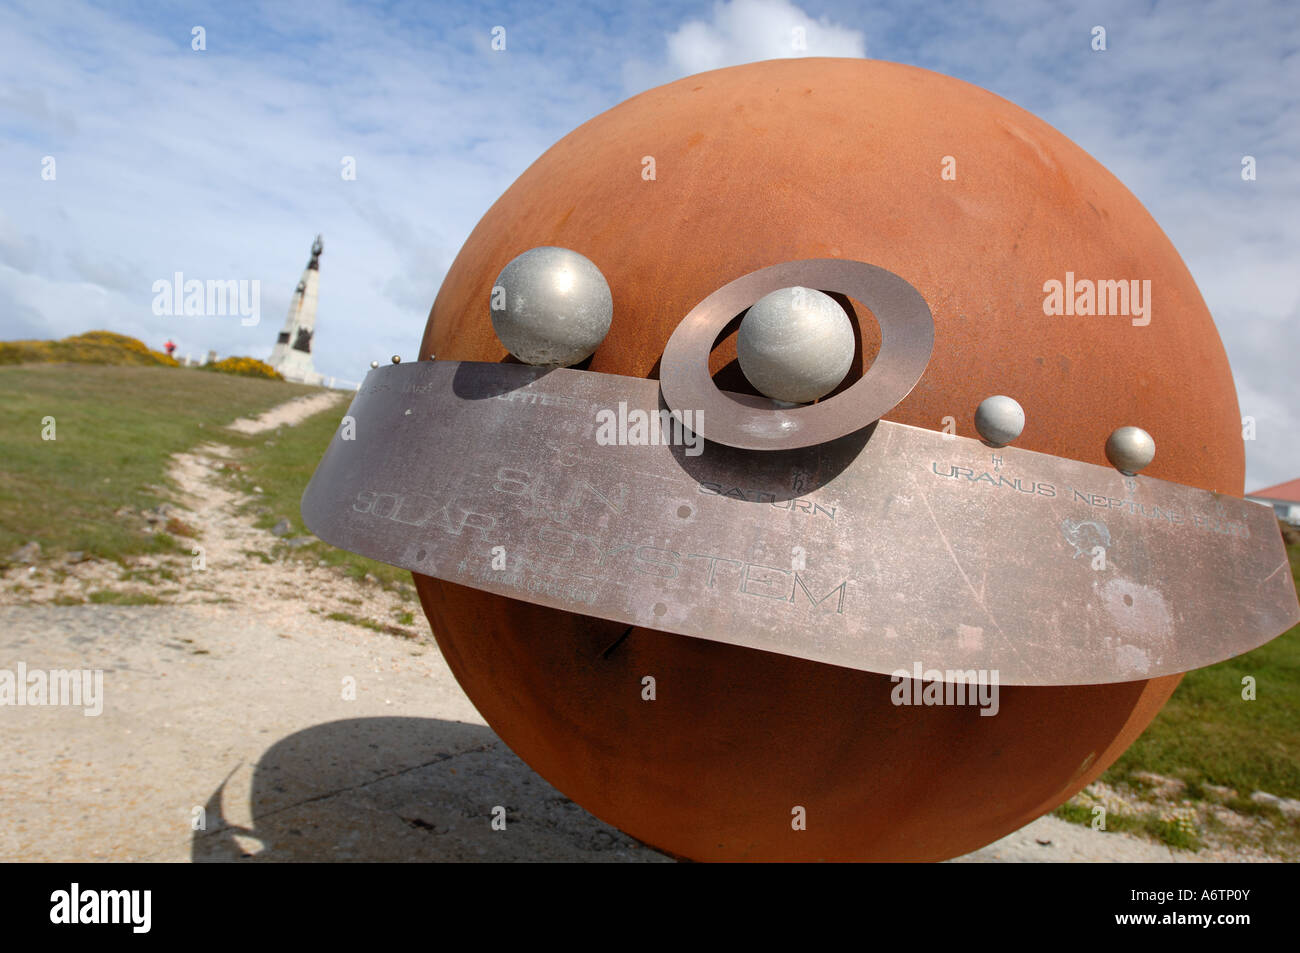 An outdoor scale model of the solar system sculpture in